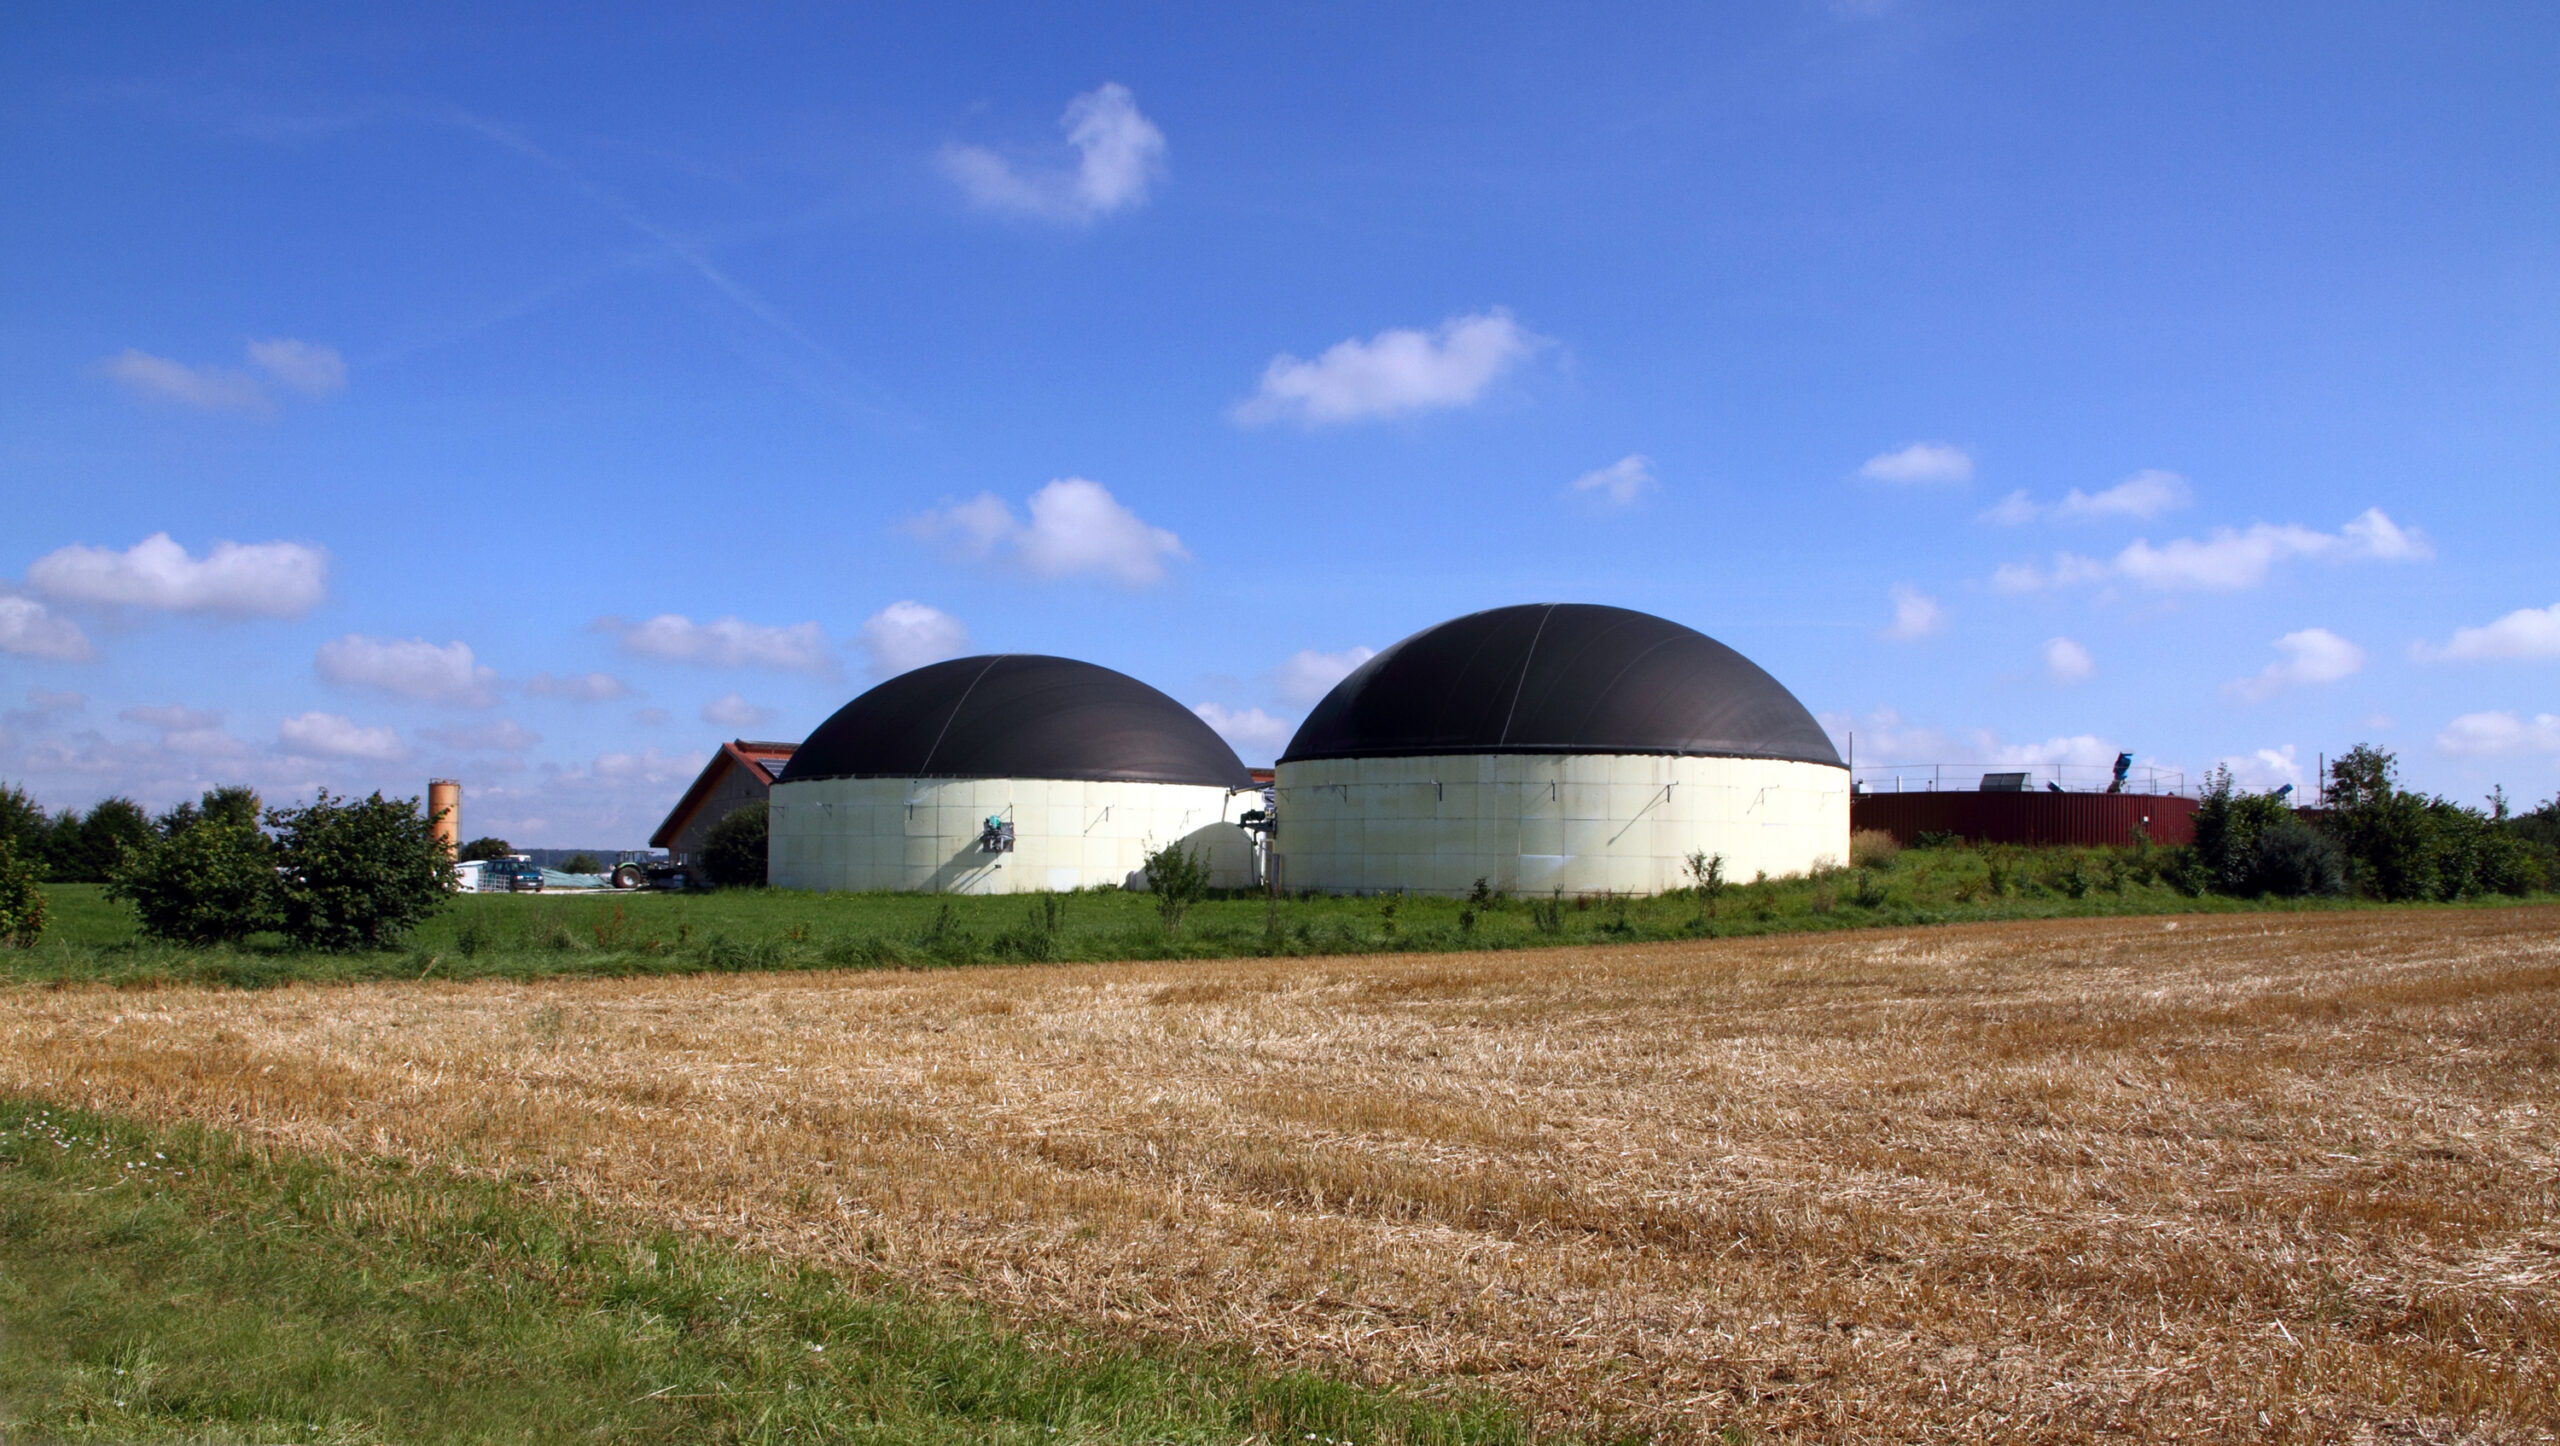 odour measurement anaerobic digestion plants